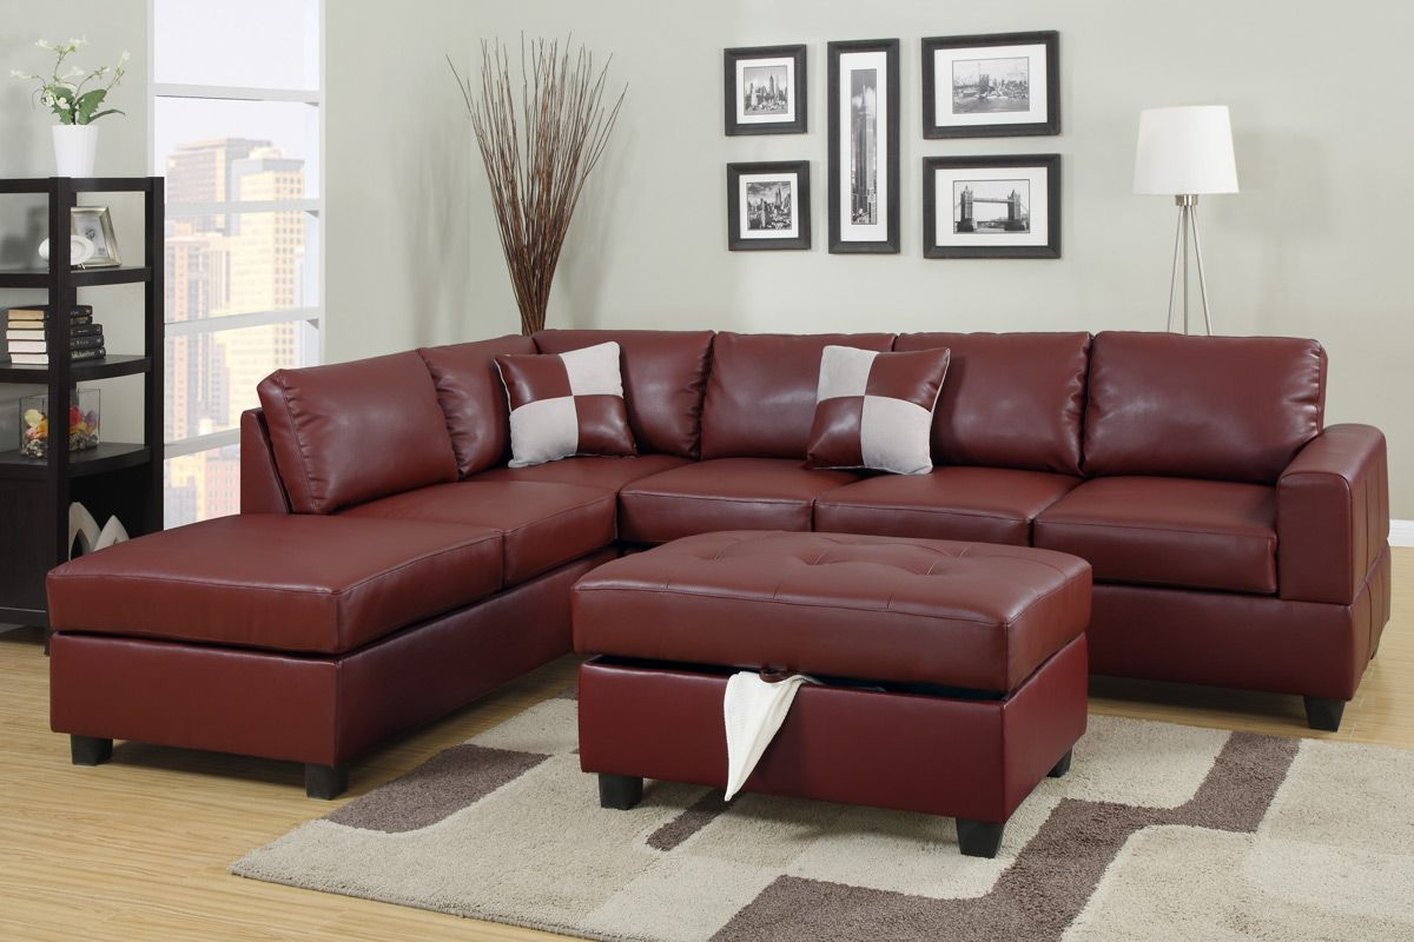 Merveilleux April Red Leather Sectional Sofa And Ottoman